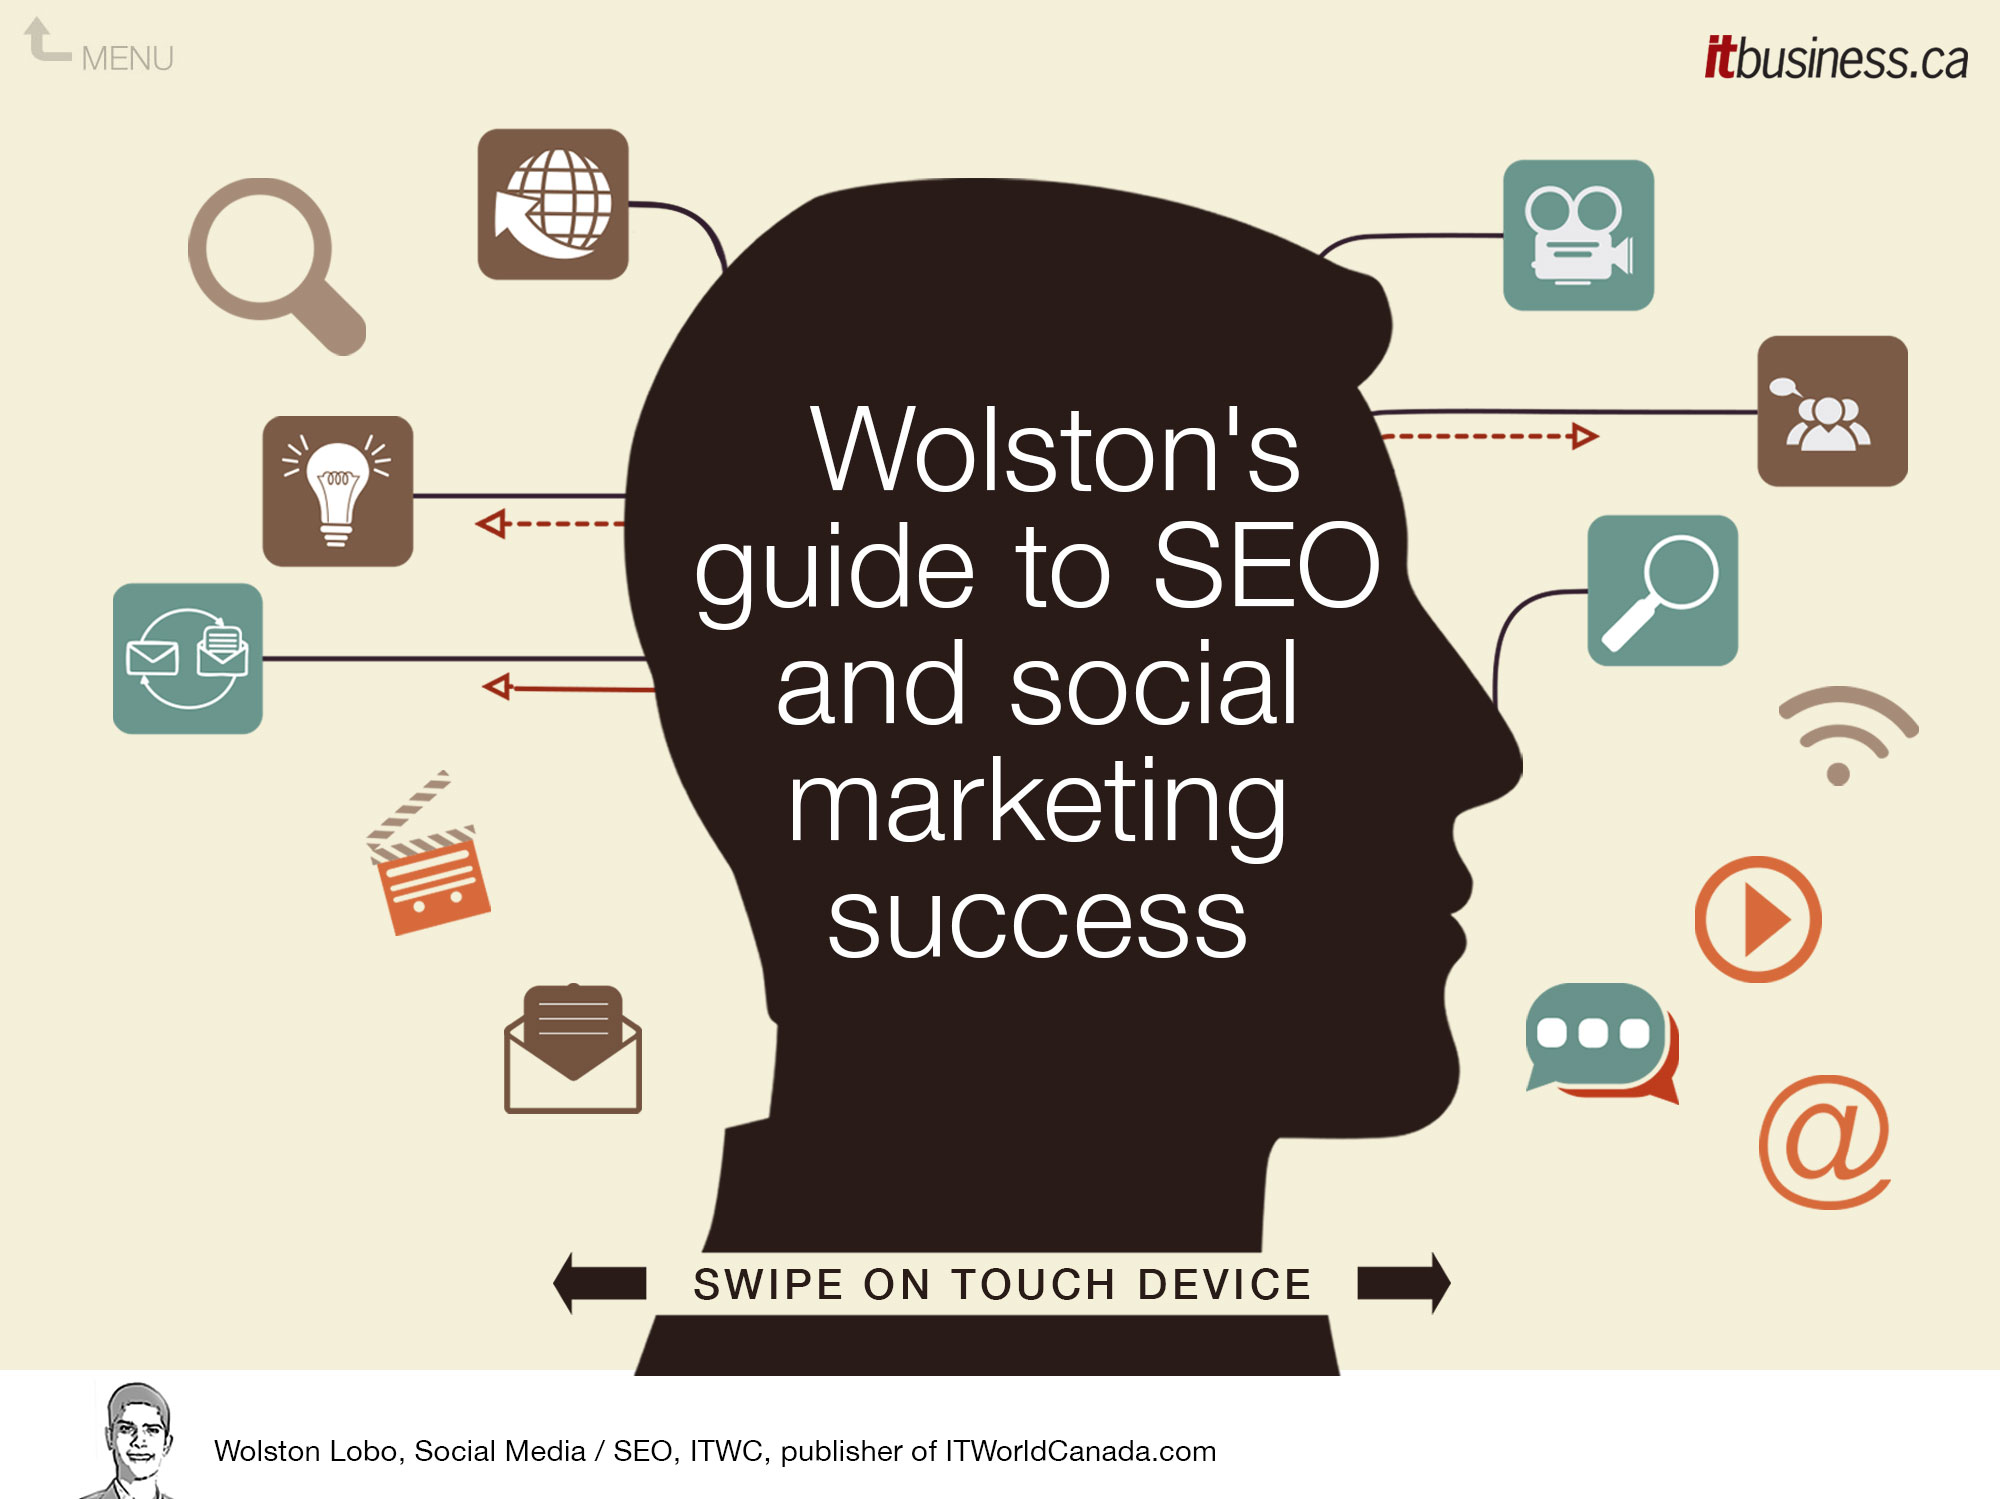 Wolston's guide to SEO and social marketing